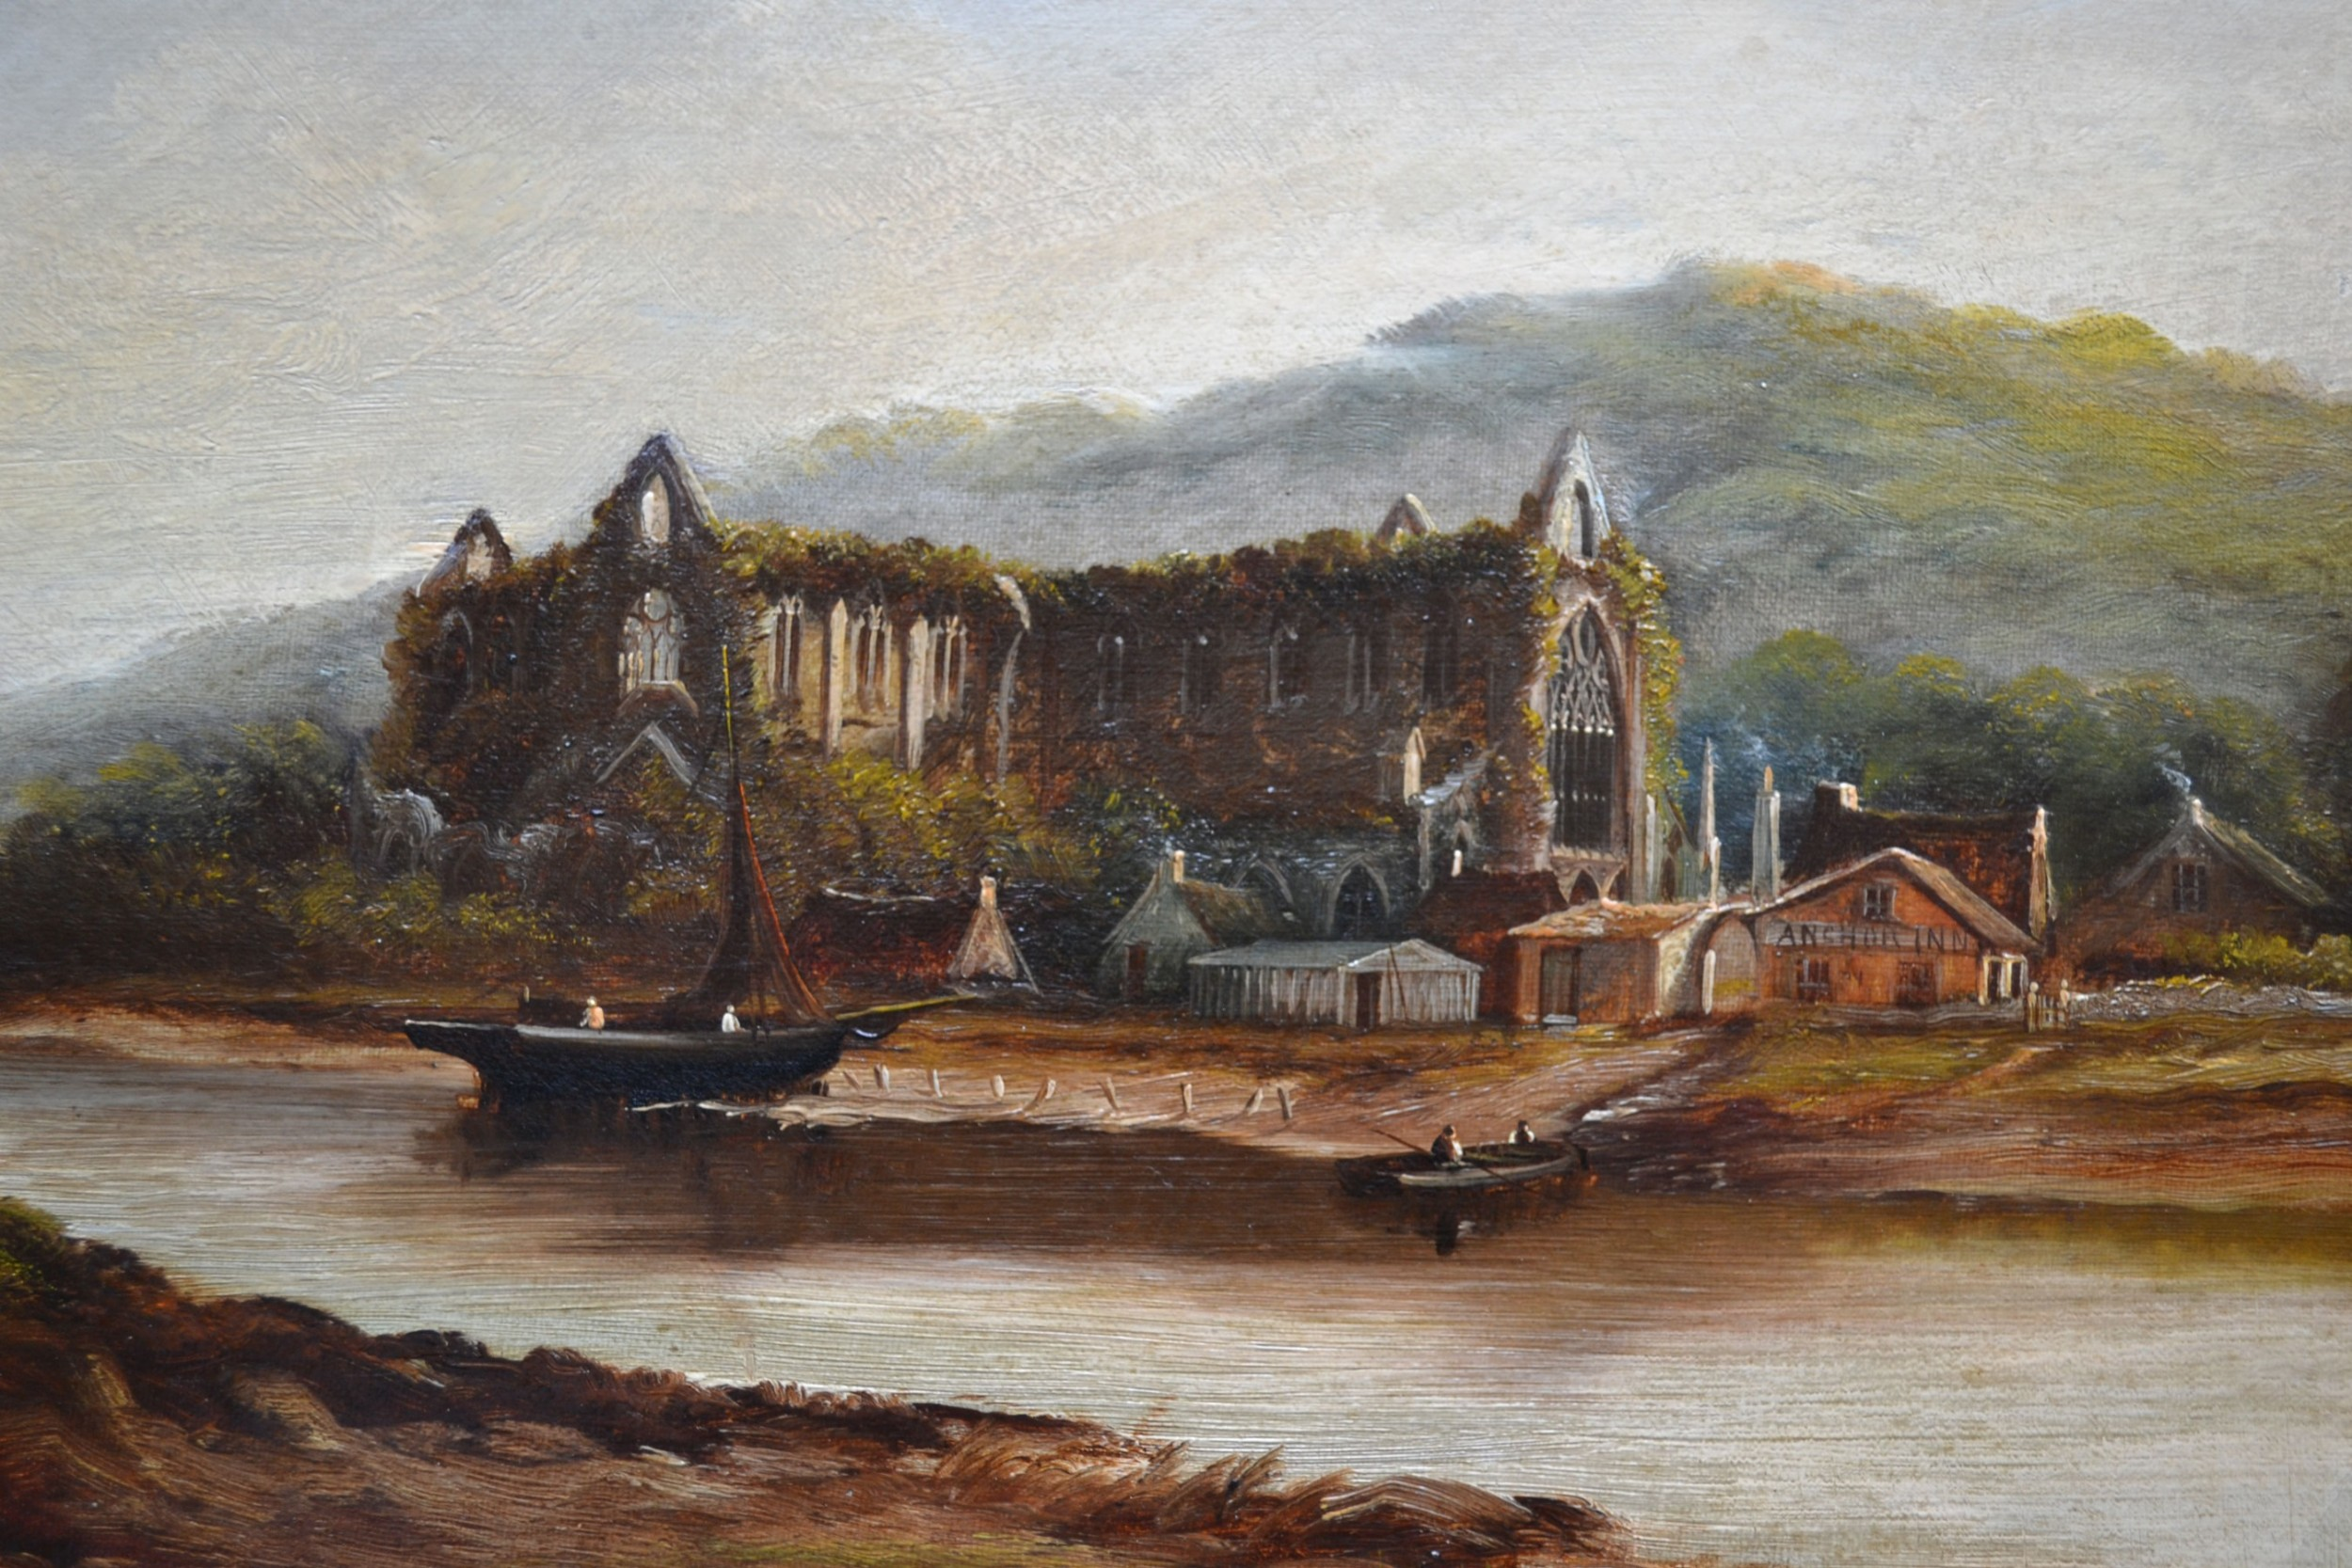 tintern abbey on the river wye c1900 henry harris 18521926 oil on canvas